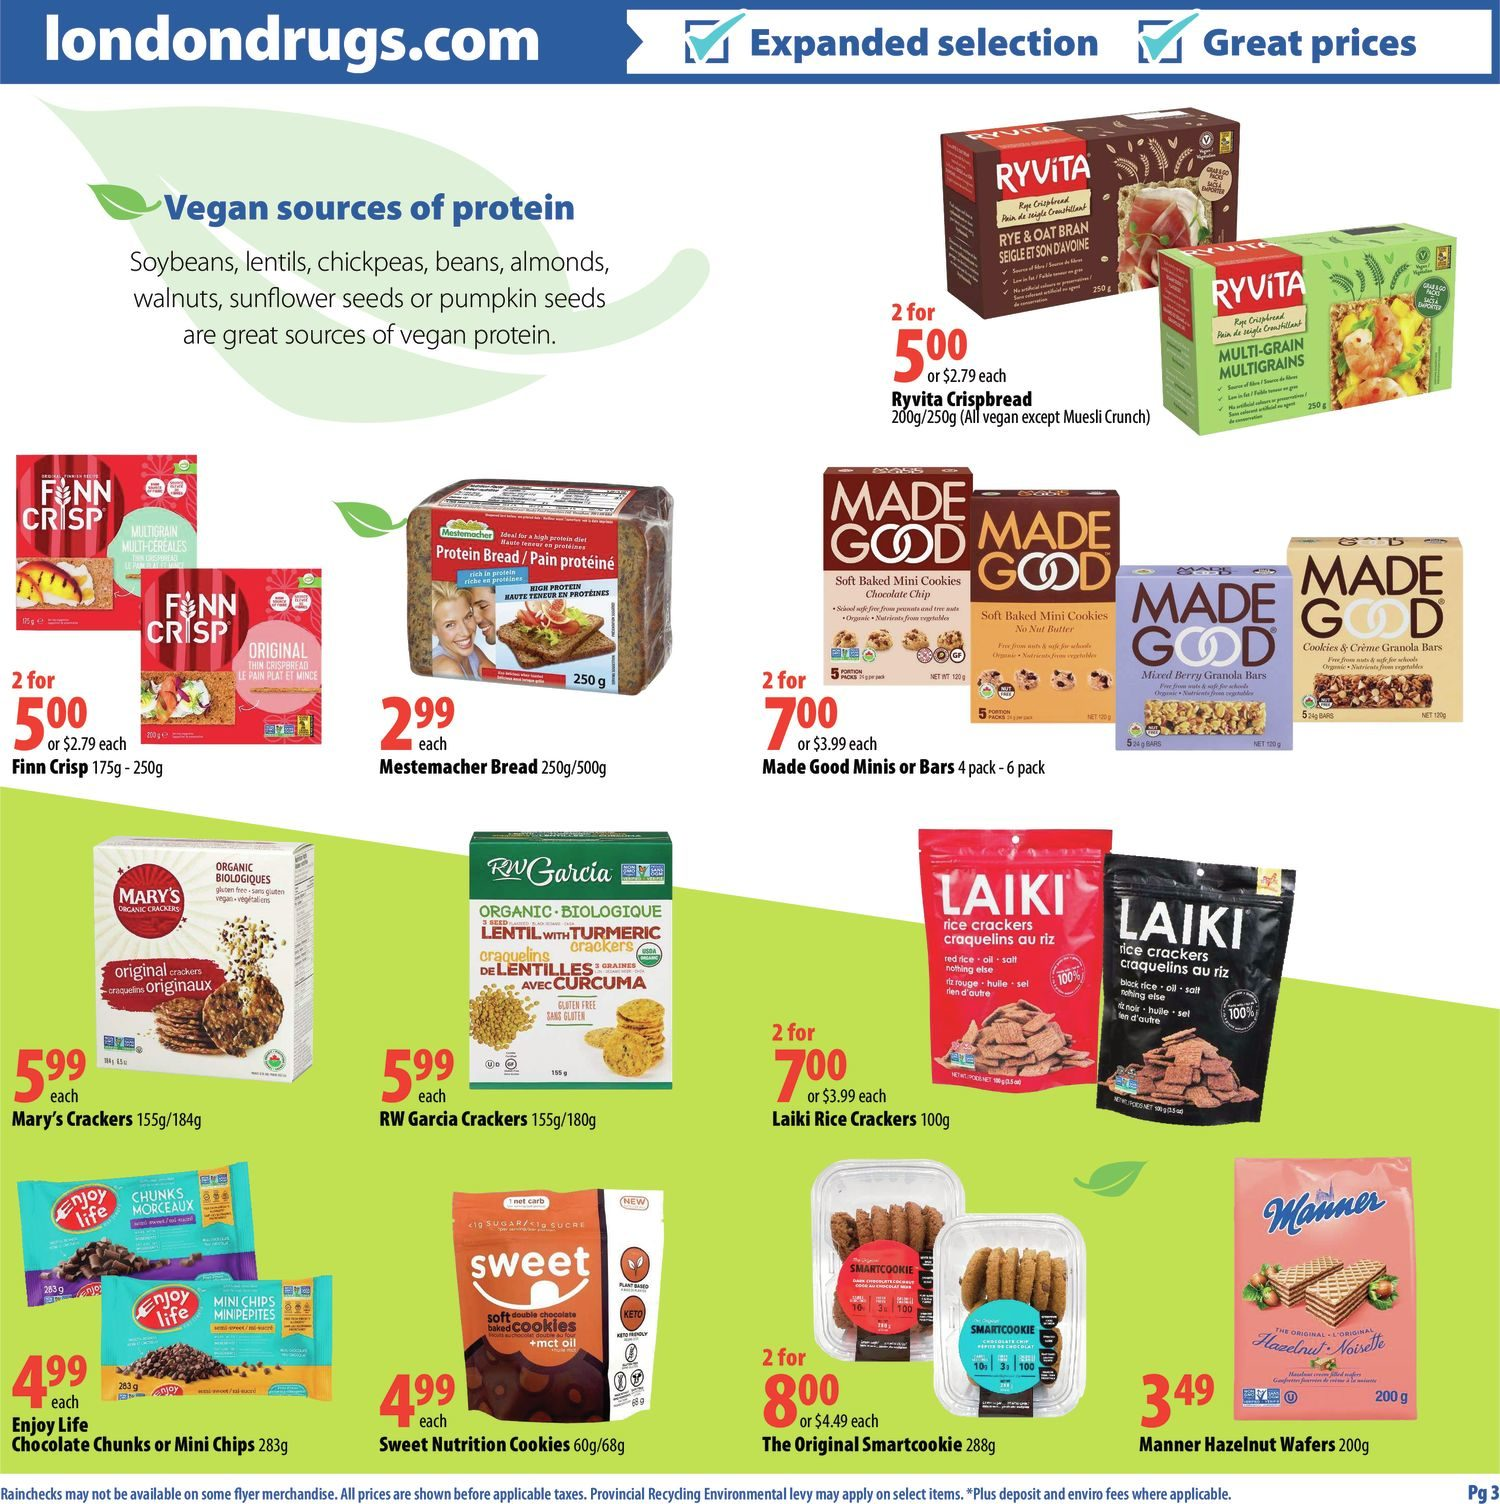 London Drugs - Veganuary - Page 5